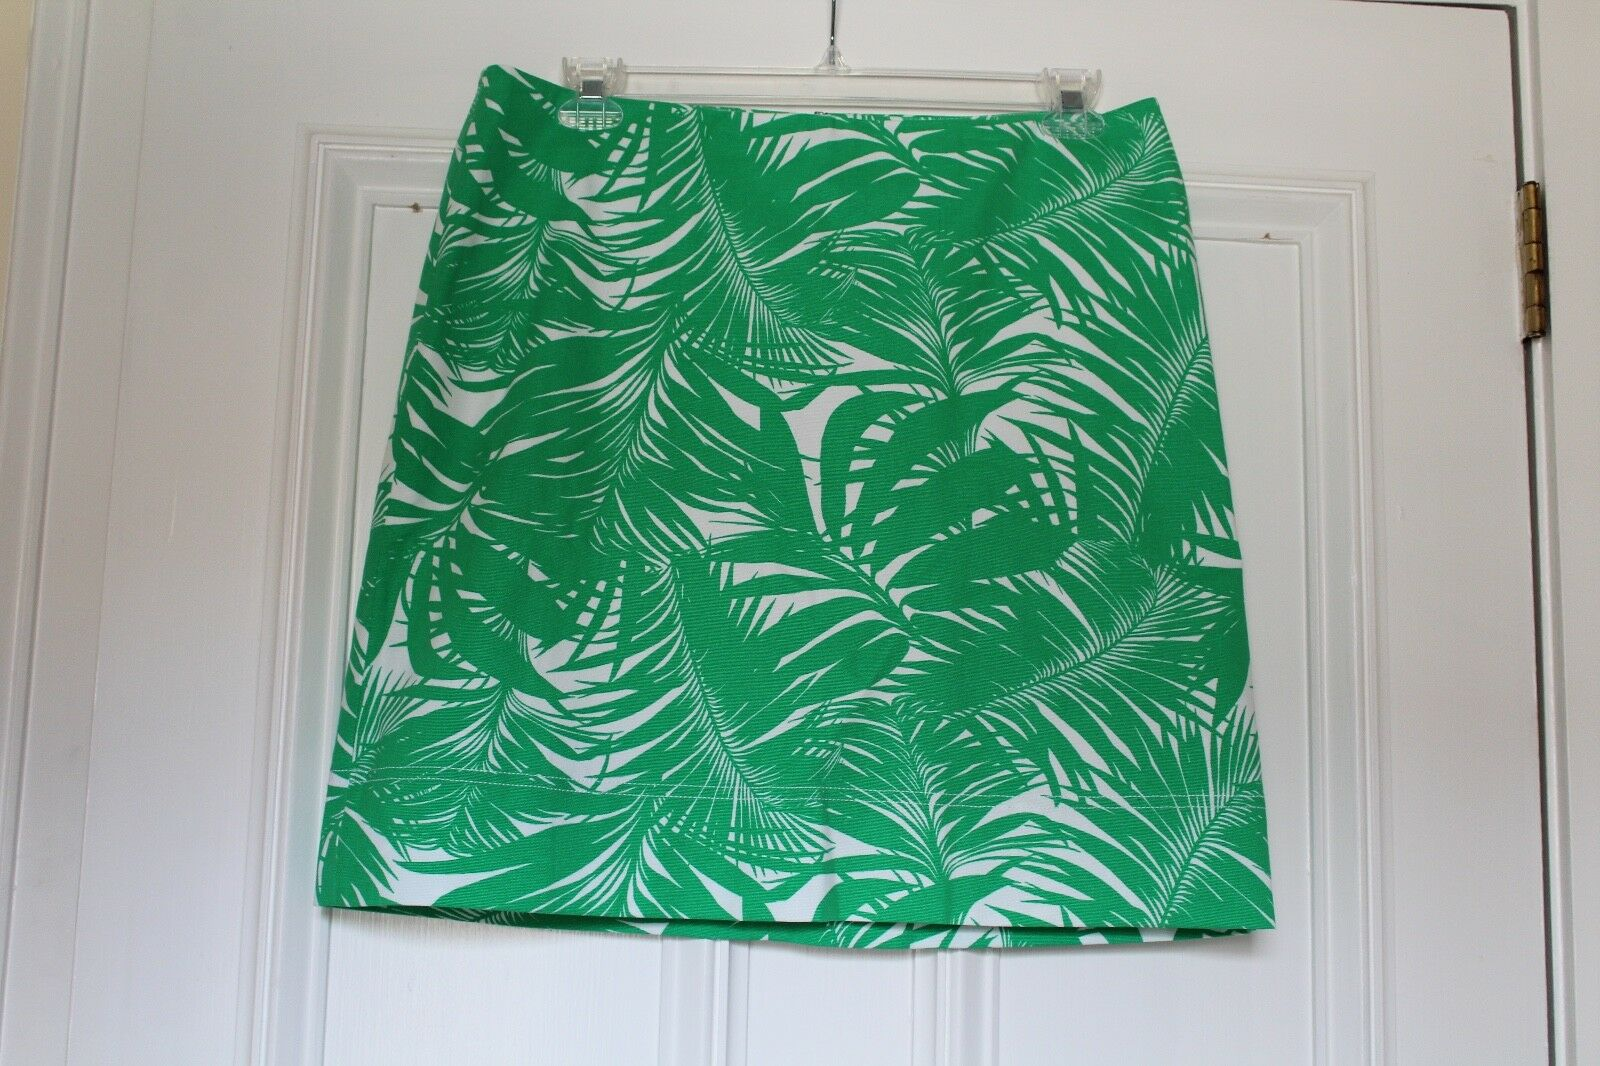 S Talbots Green & White Palm Leaf Tropical Print Skirt Cotton Lined  Size 14